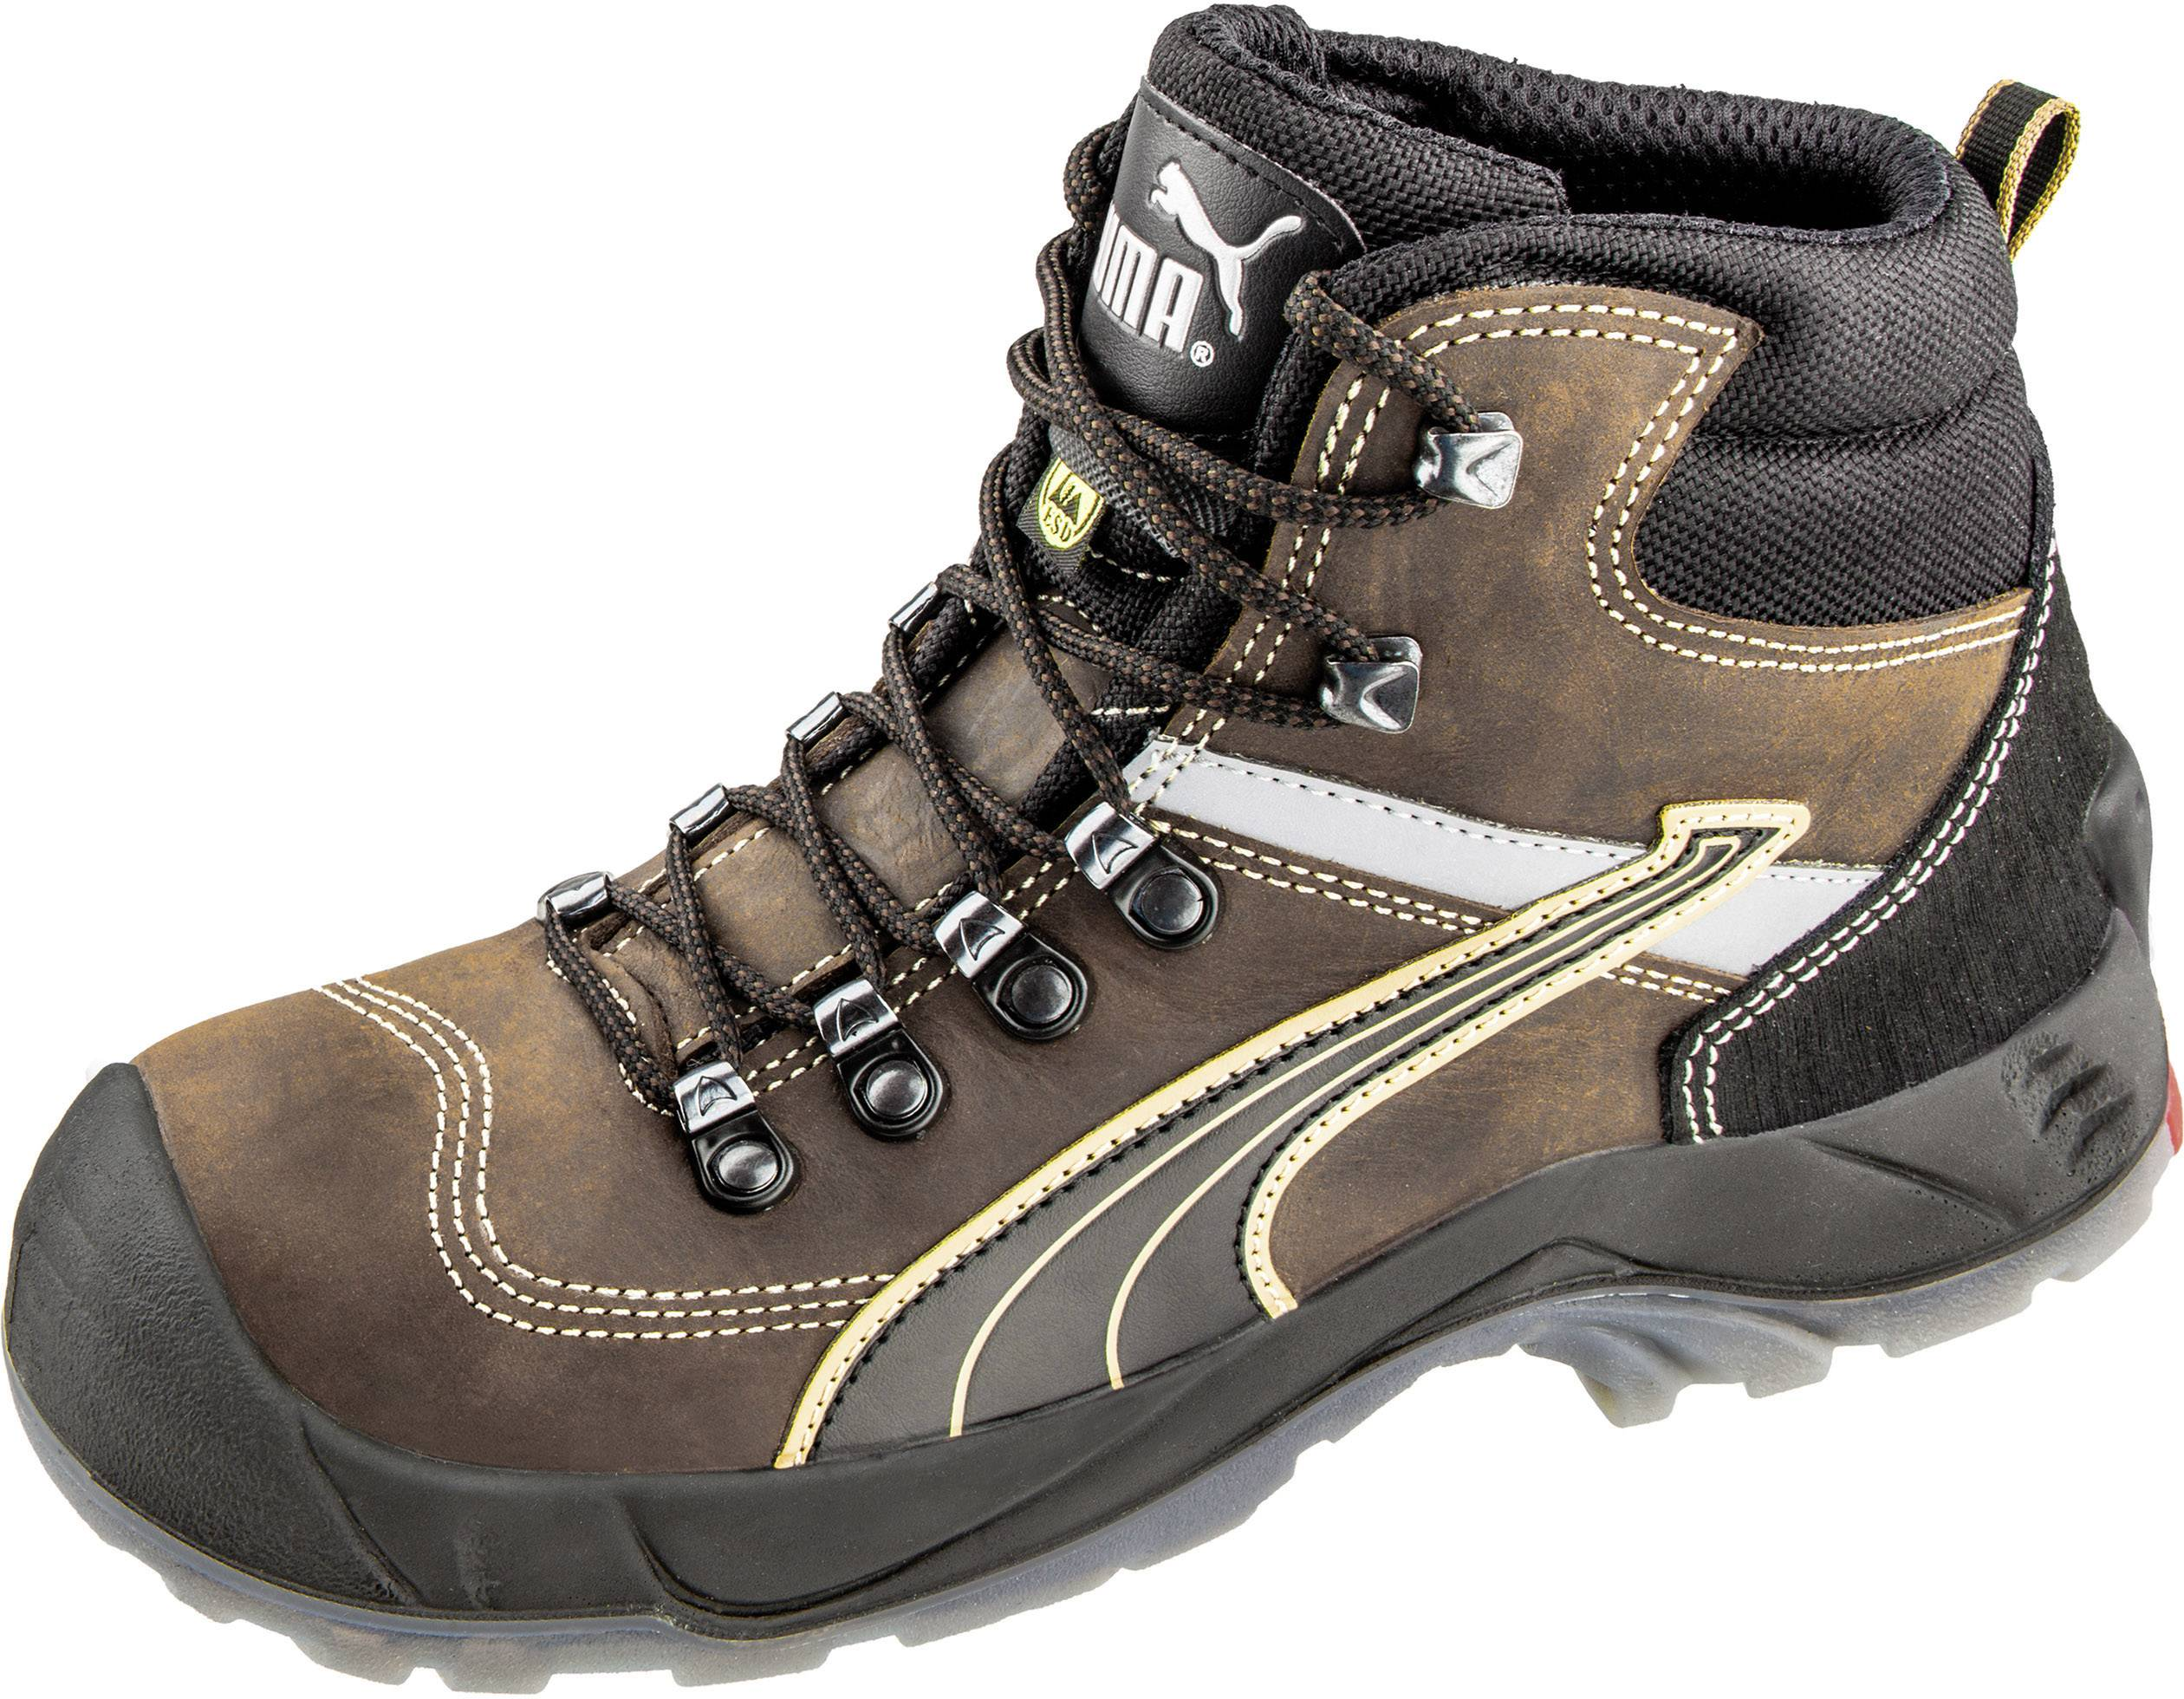 173b7bbab5c ESD protective boots S3 Size  41 Brown PUMA Safety Condor Mid ESD SRC  630122-41 1 pair